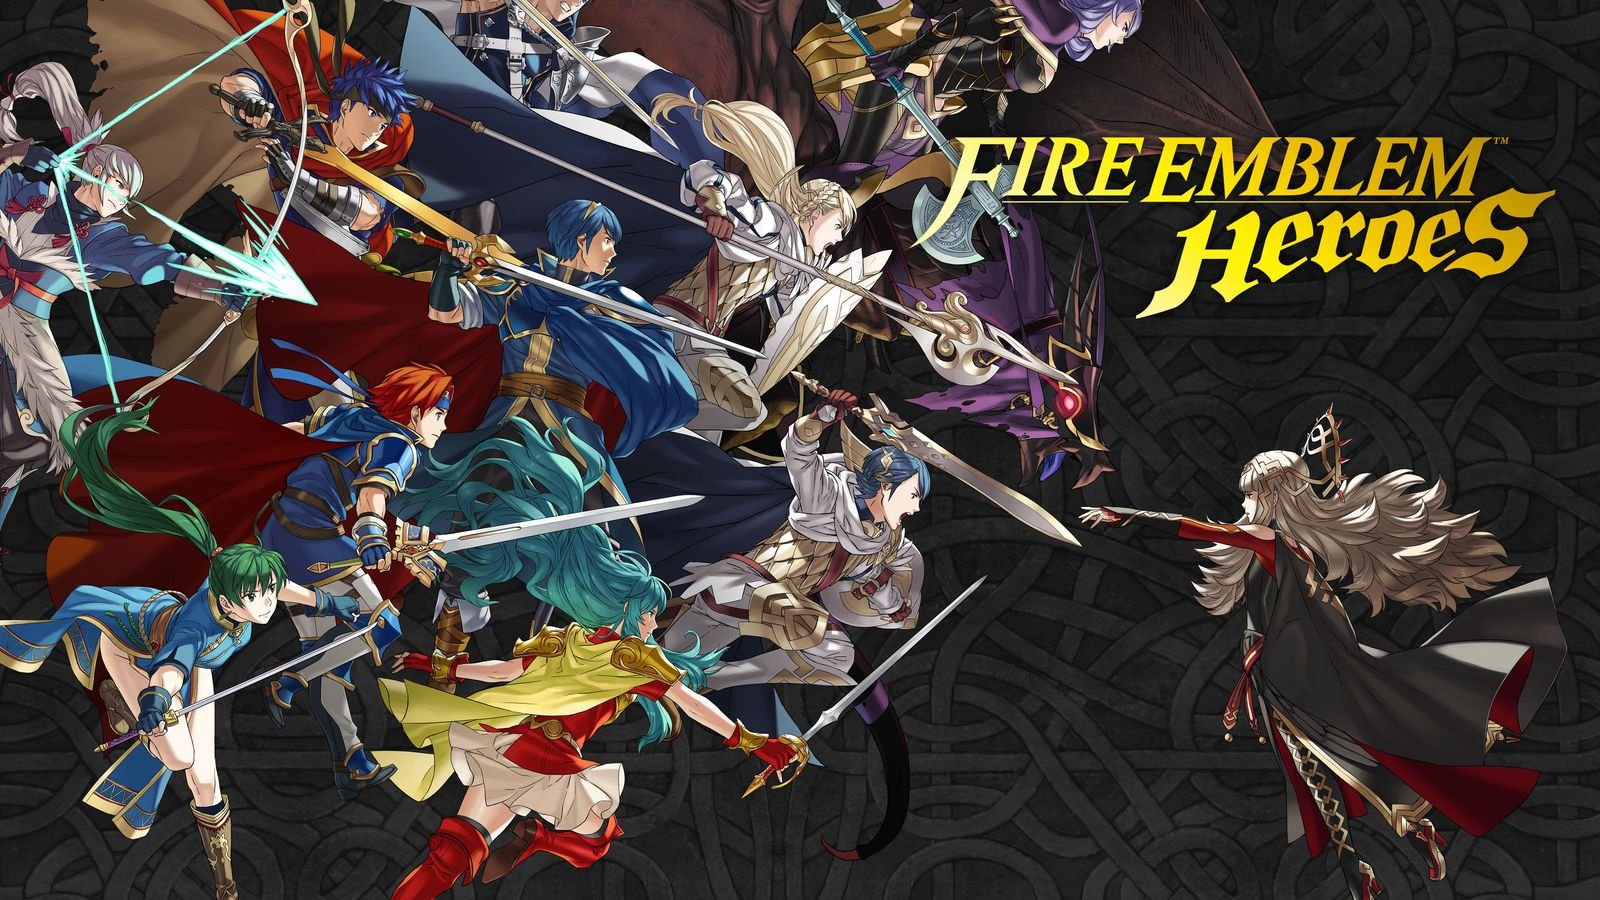 Modojo | You Can Vote For Your Favorite Fire Emblem Heroes in New